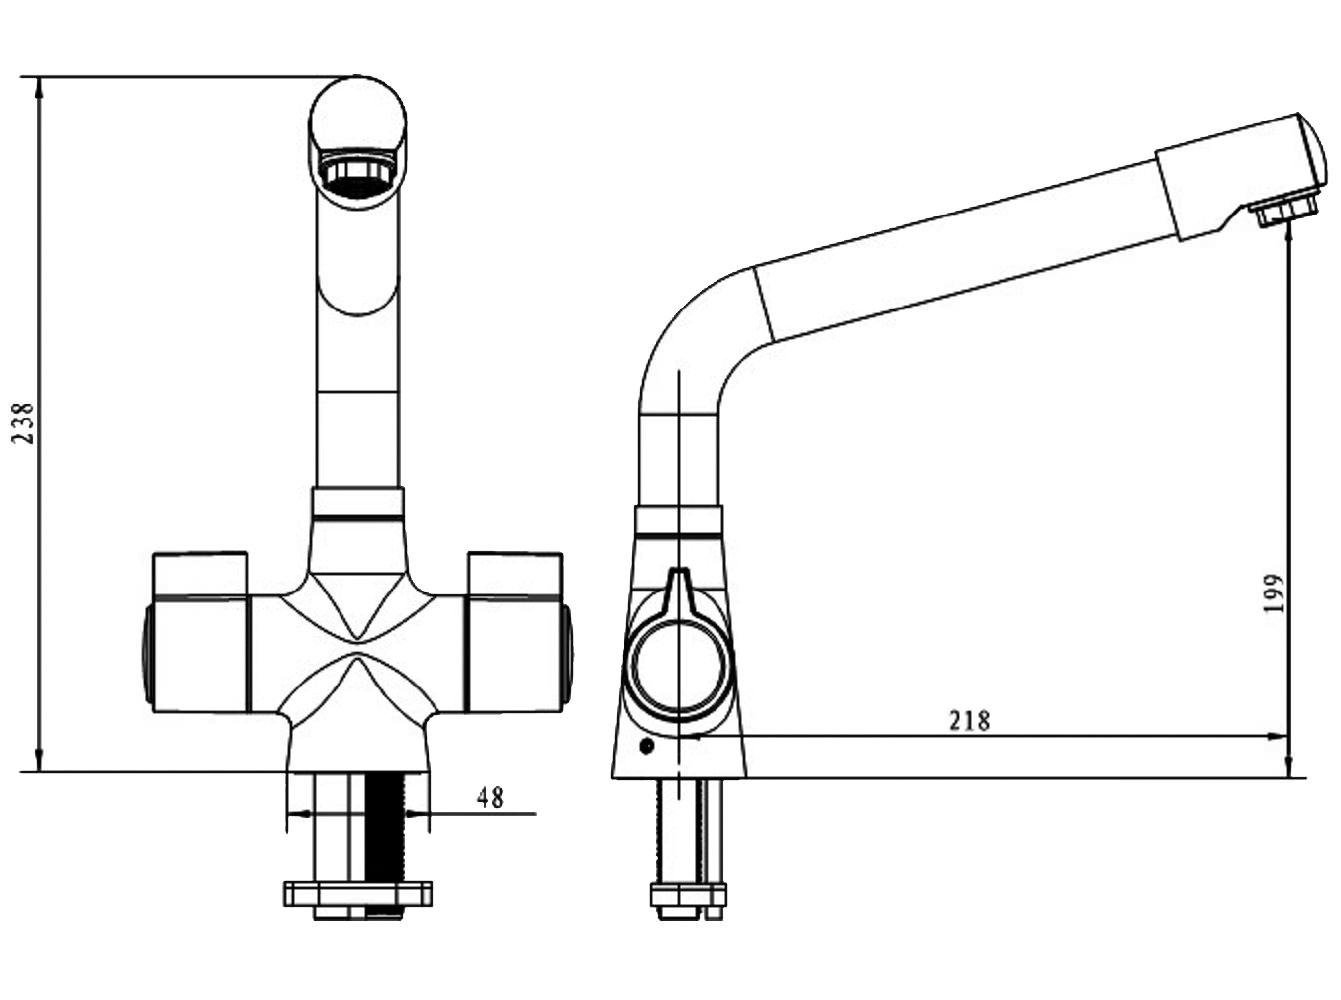 Bristan Sigma Mono Kitchen Sink Mixer Tap Plumbing Diagram Shematic Technical Drawing Qs V52268 S Snk Ef C To